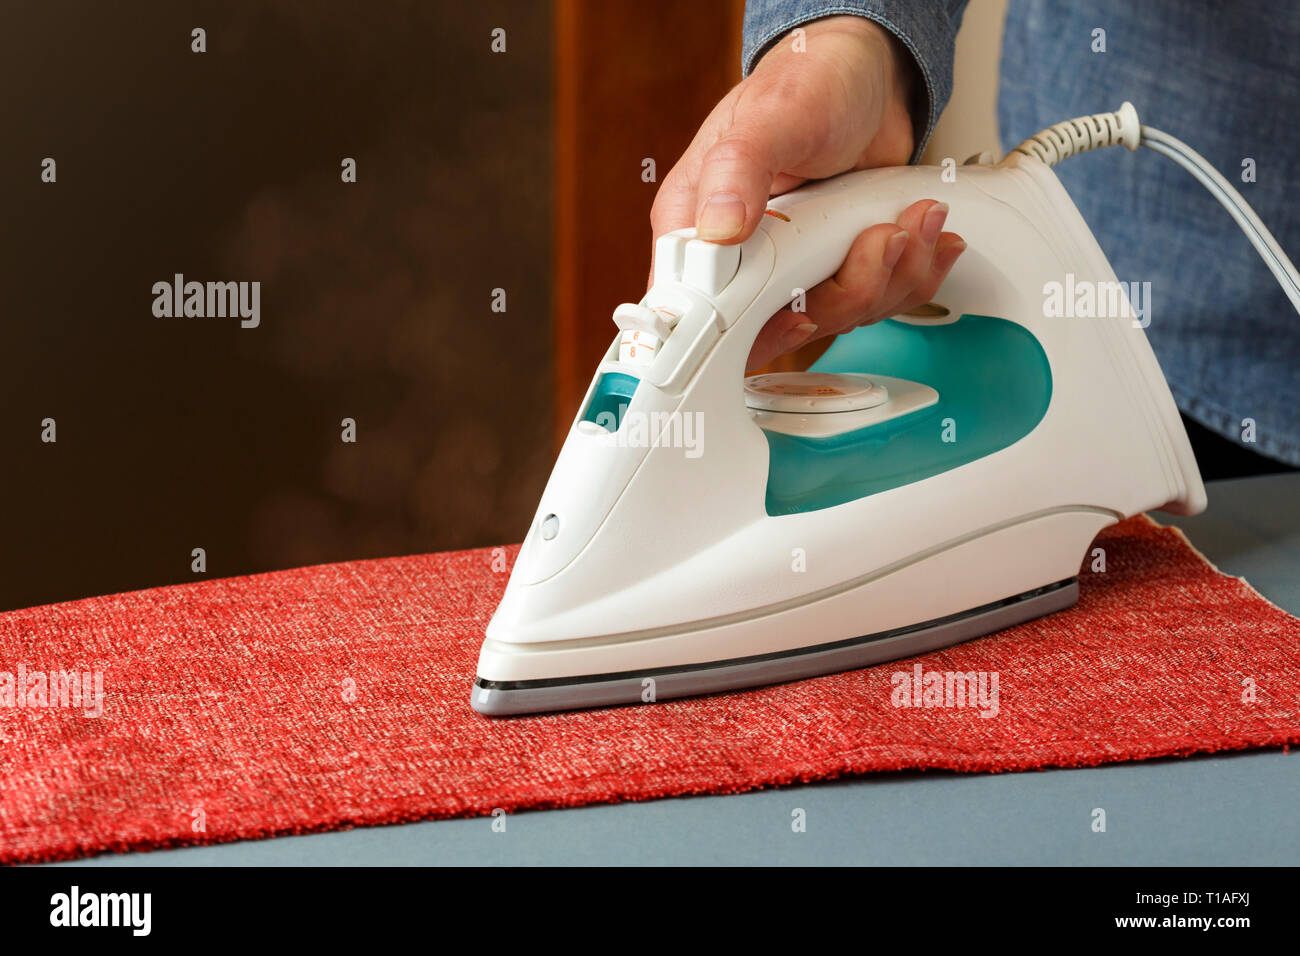 Woman's hand using steam iron ironing cloth fabric on ironing board. Small home electrical appliances people doing housework laundry chores. - Stock Image